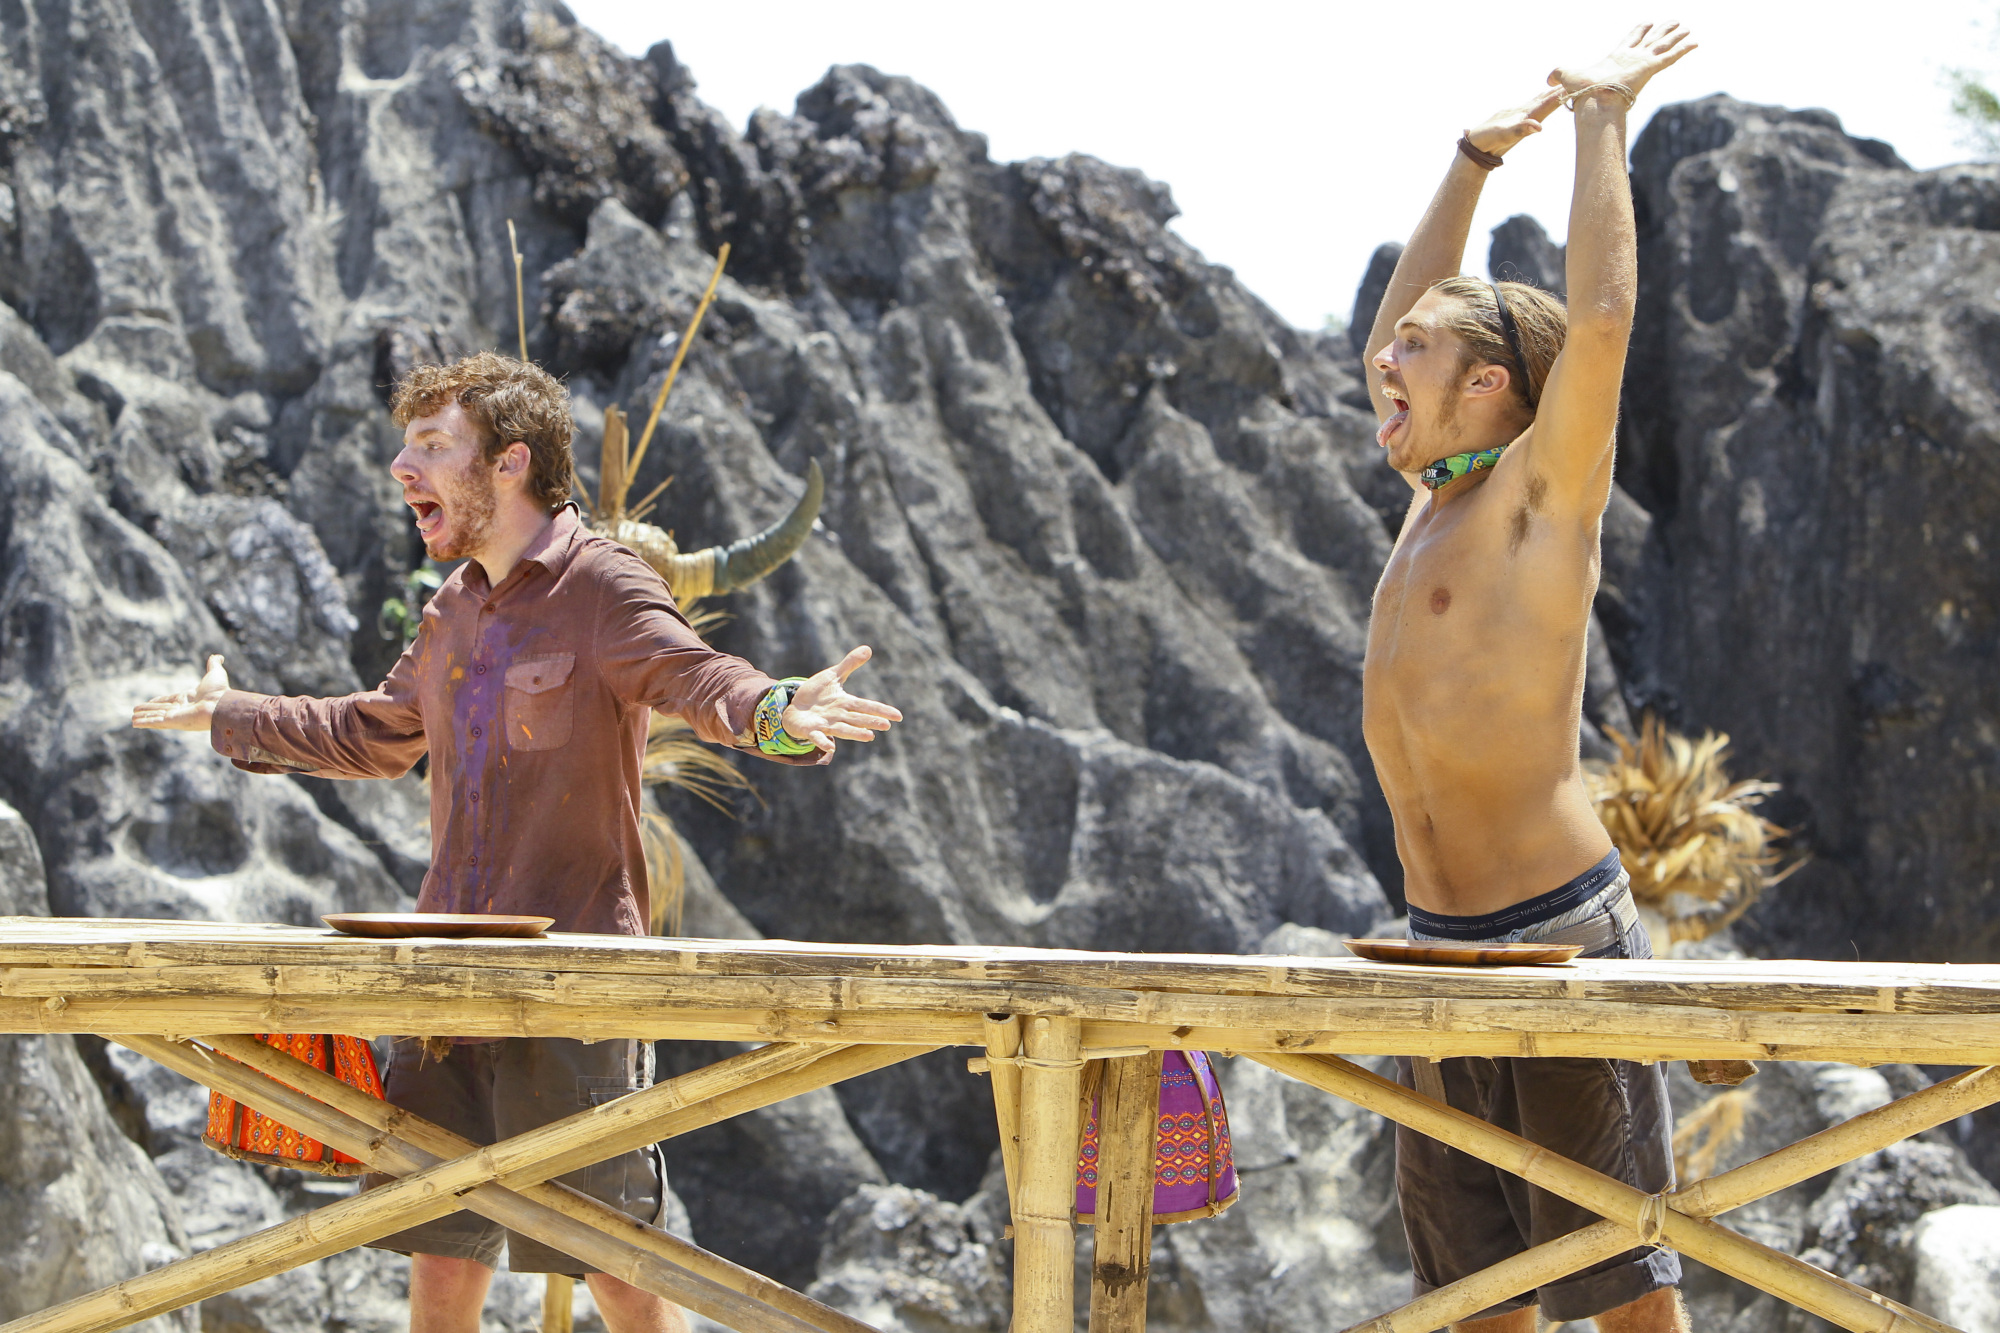 Immunity challenge competition in